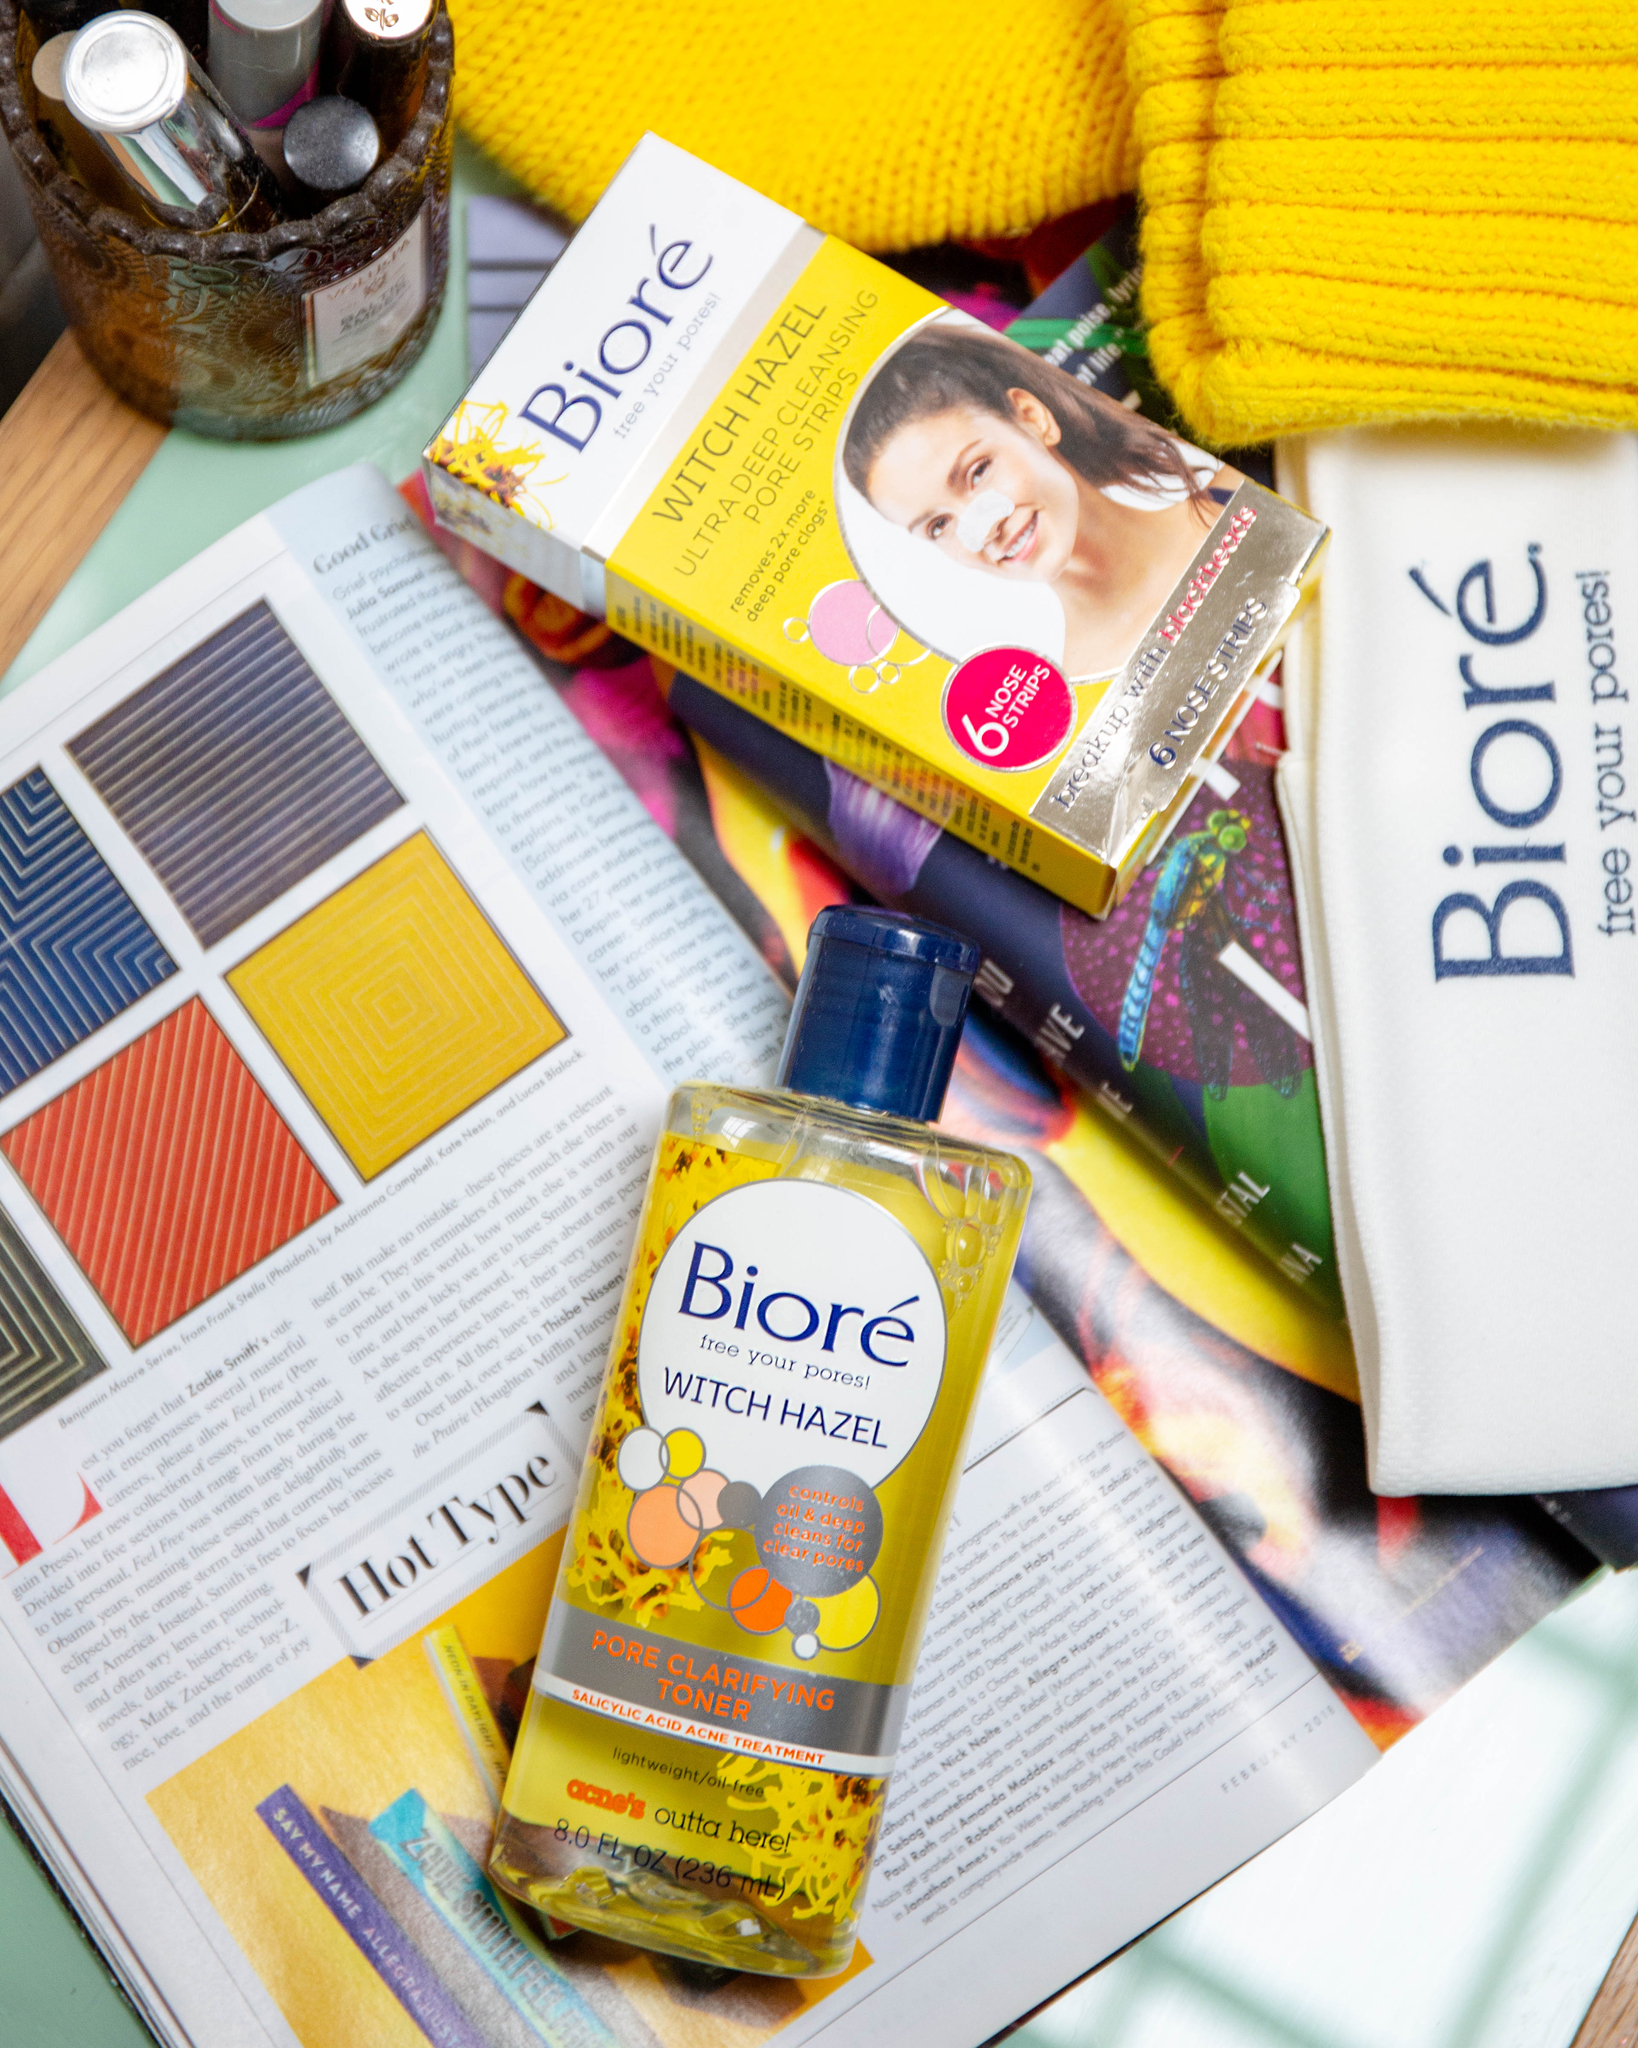 Biore Witch Hazel